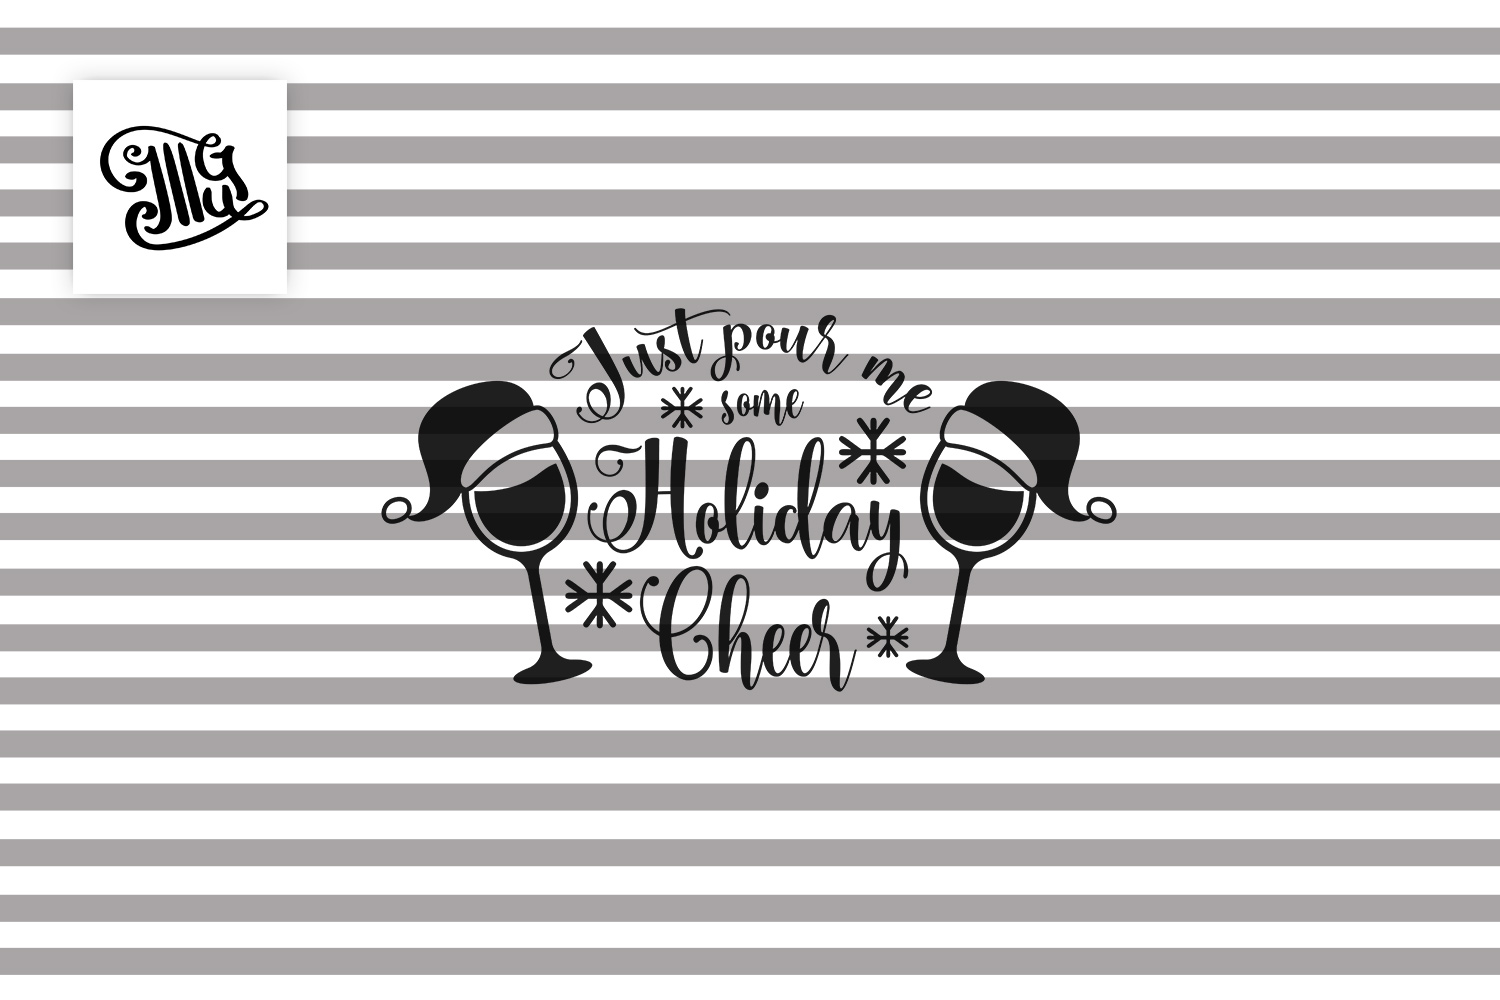 Just pour me some holiday Cheer - Christmas wine example image 2